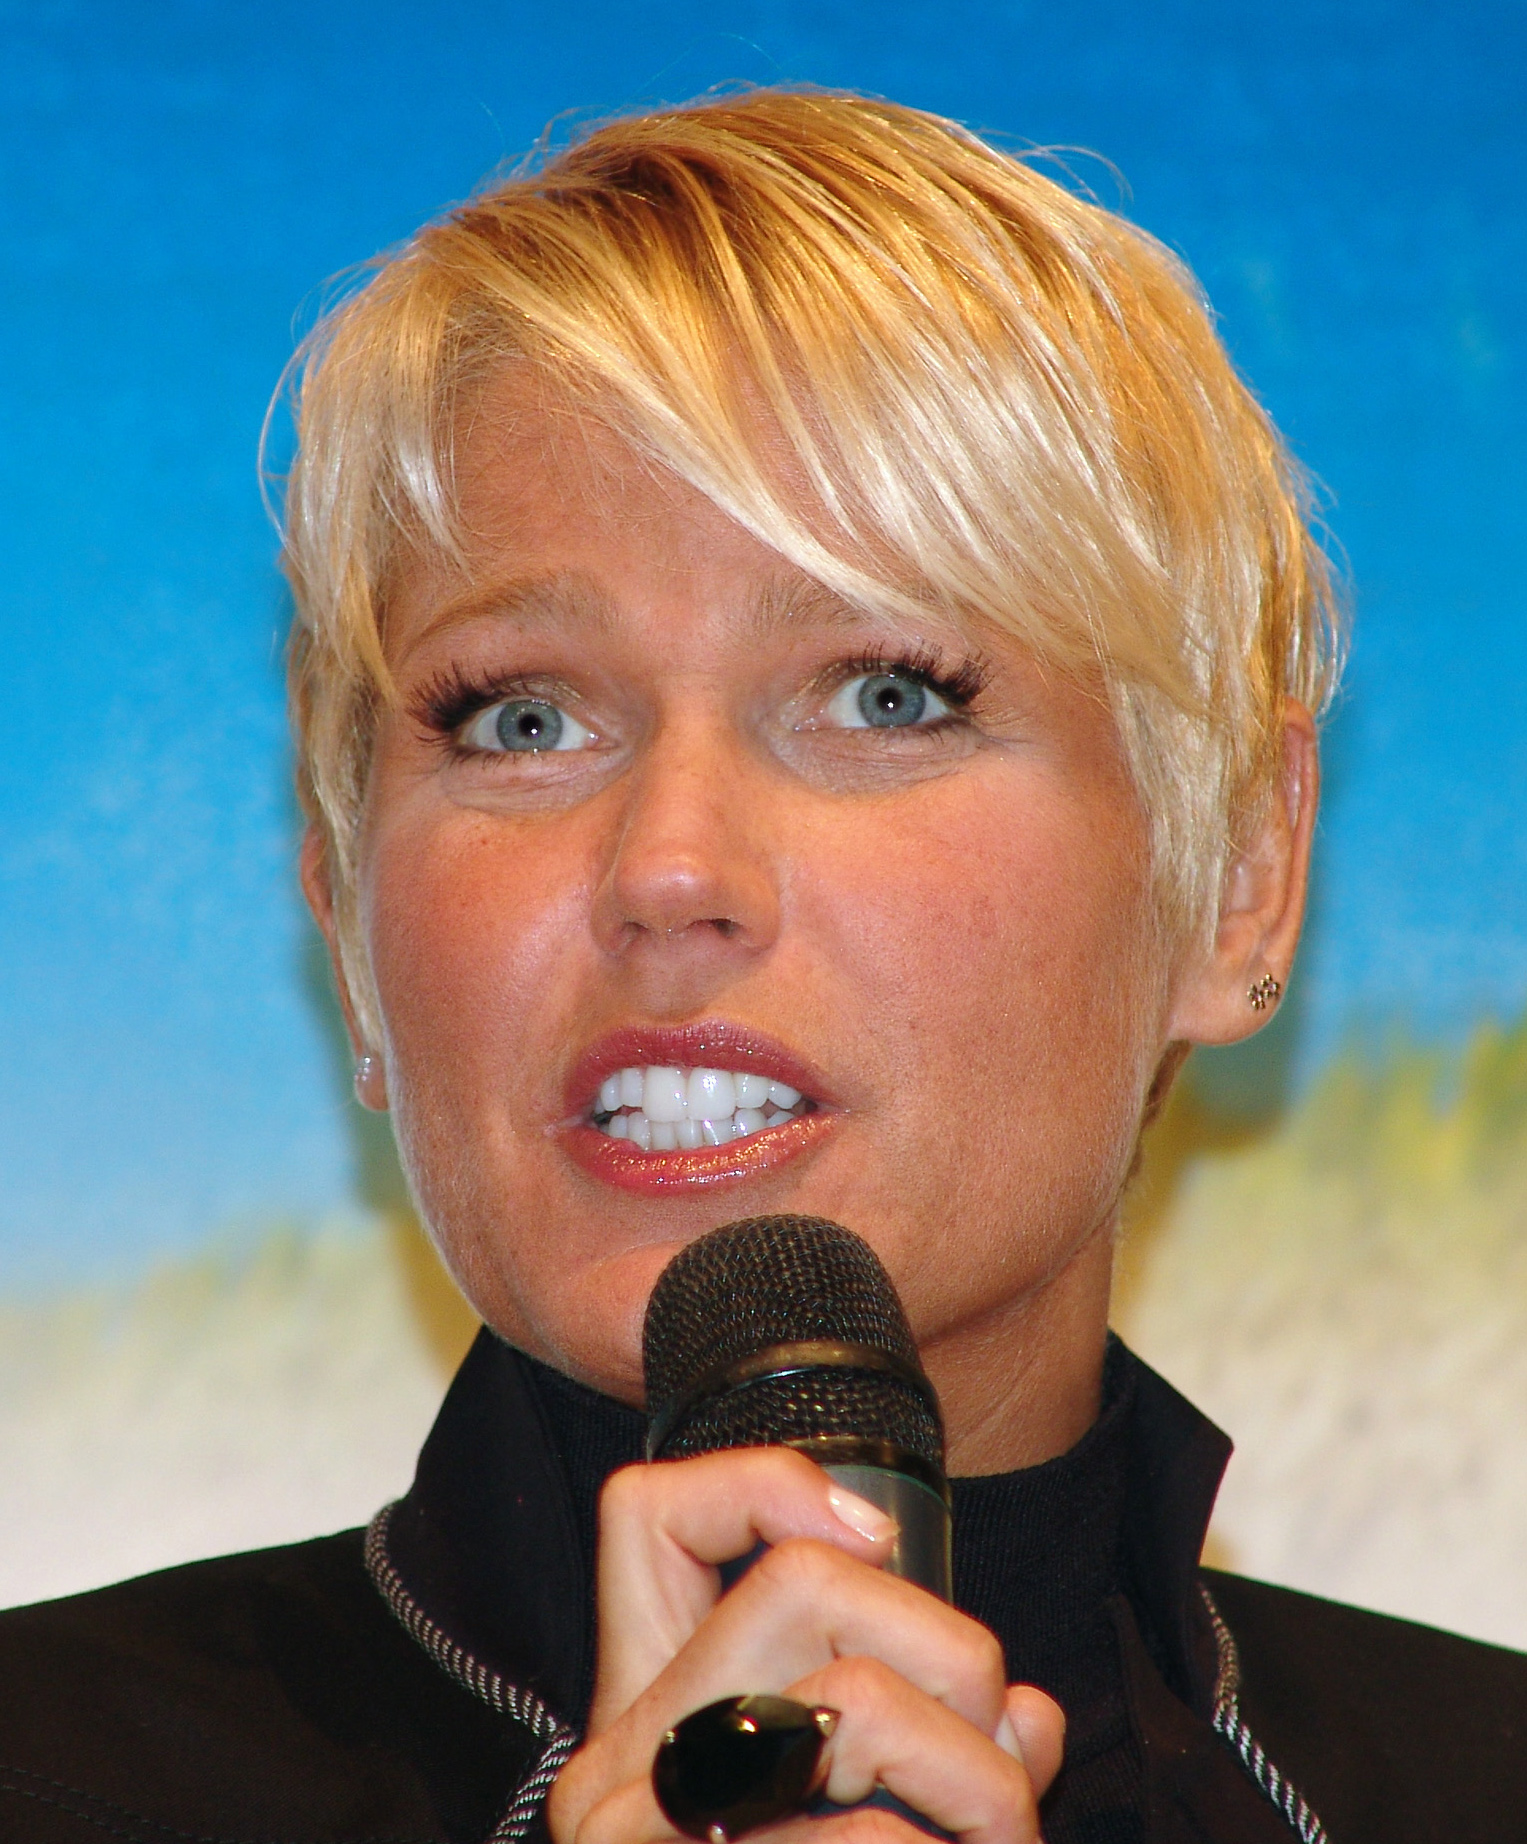 Thread: Classify Xuxa Meneghel